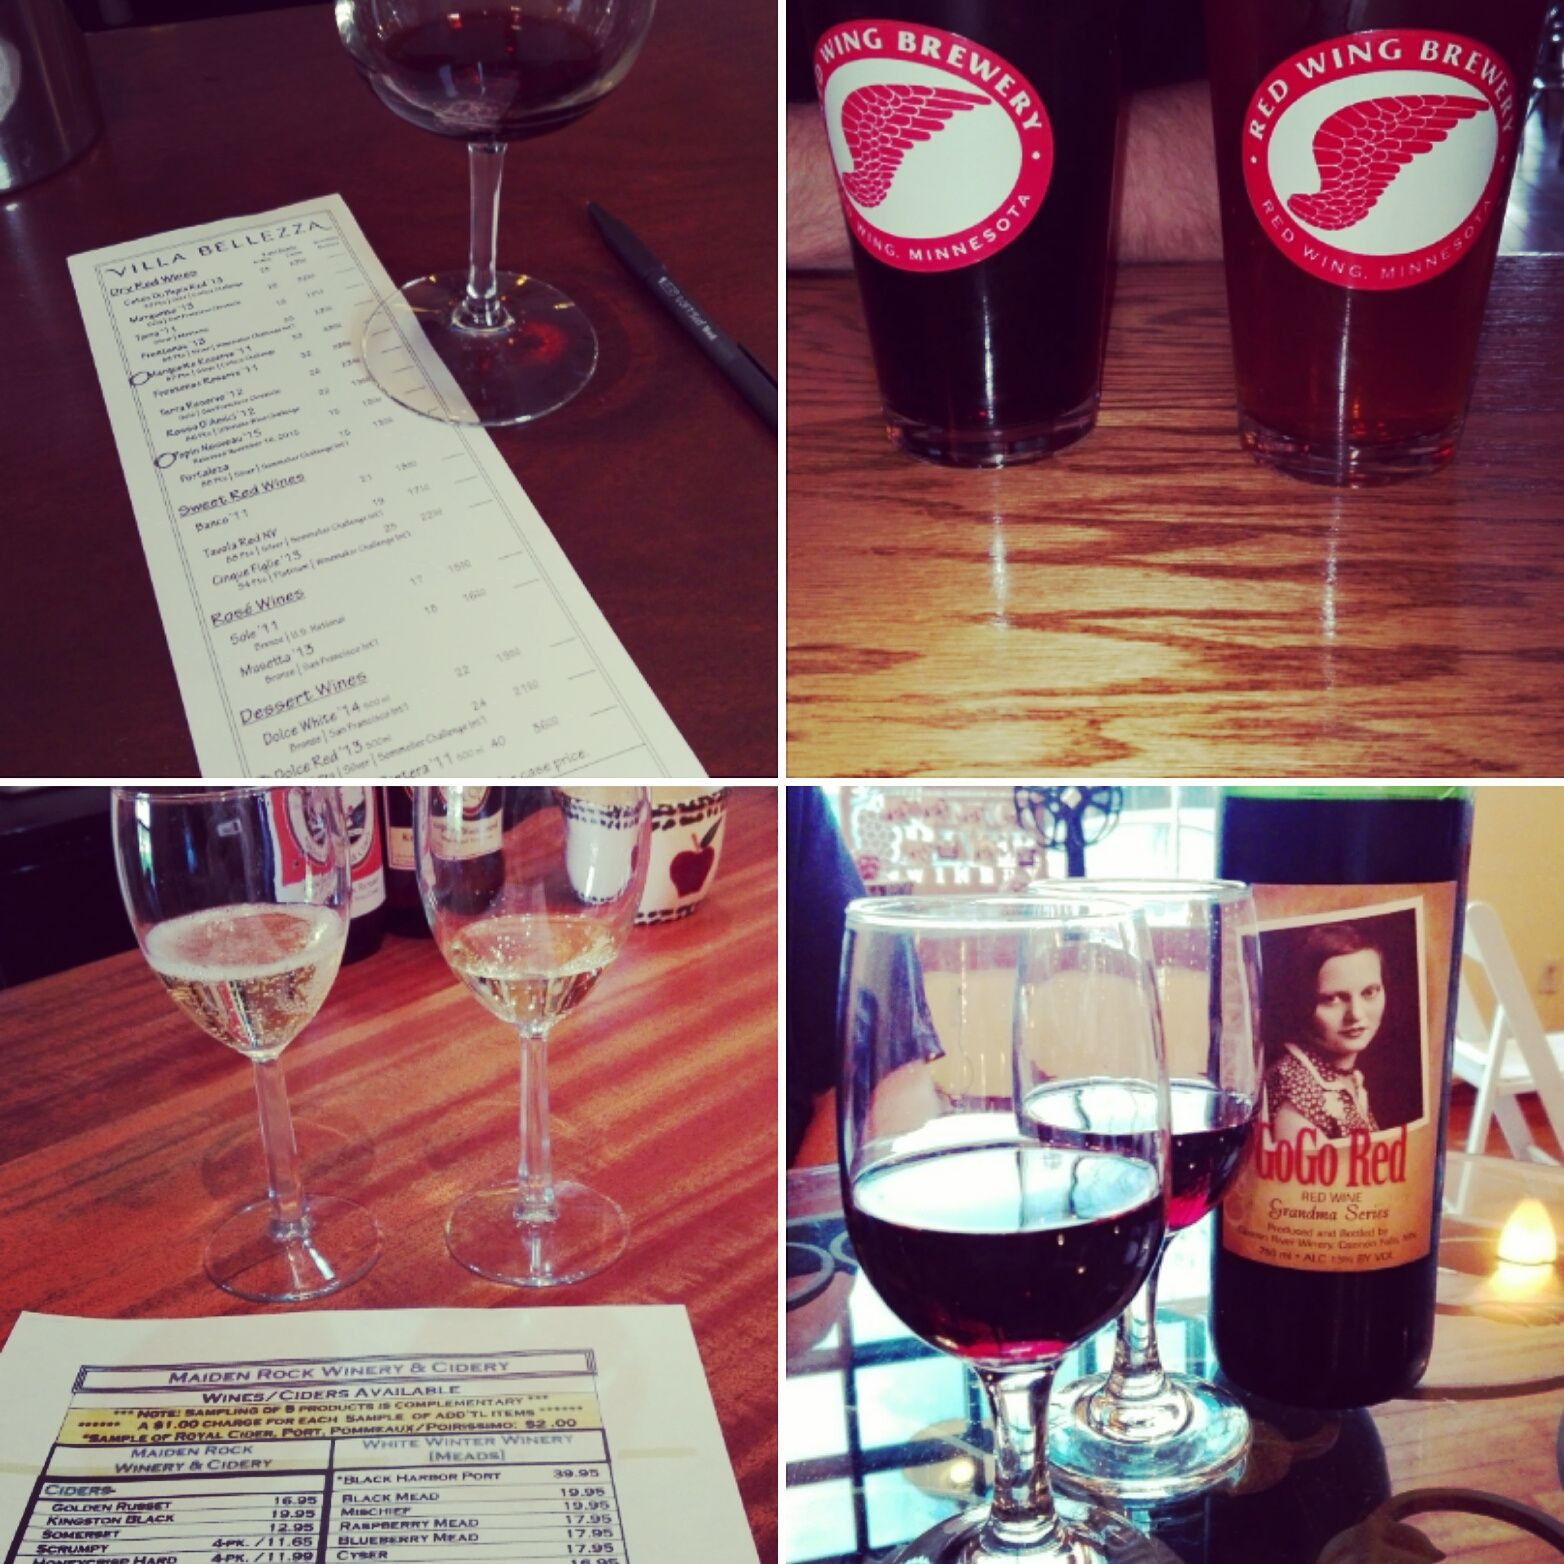 My Adventures In Travel Great River Road Wine Trail Plus A Brewery Wine Trail Wine Brewery